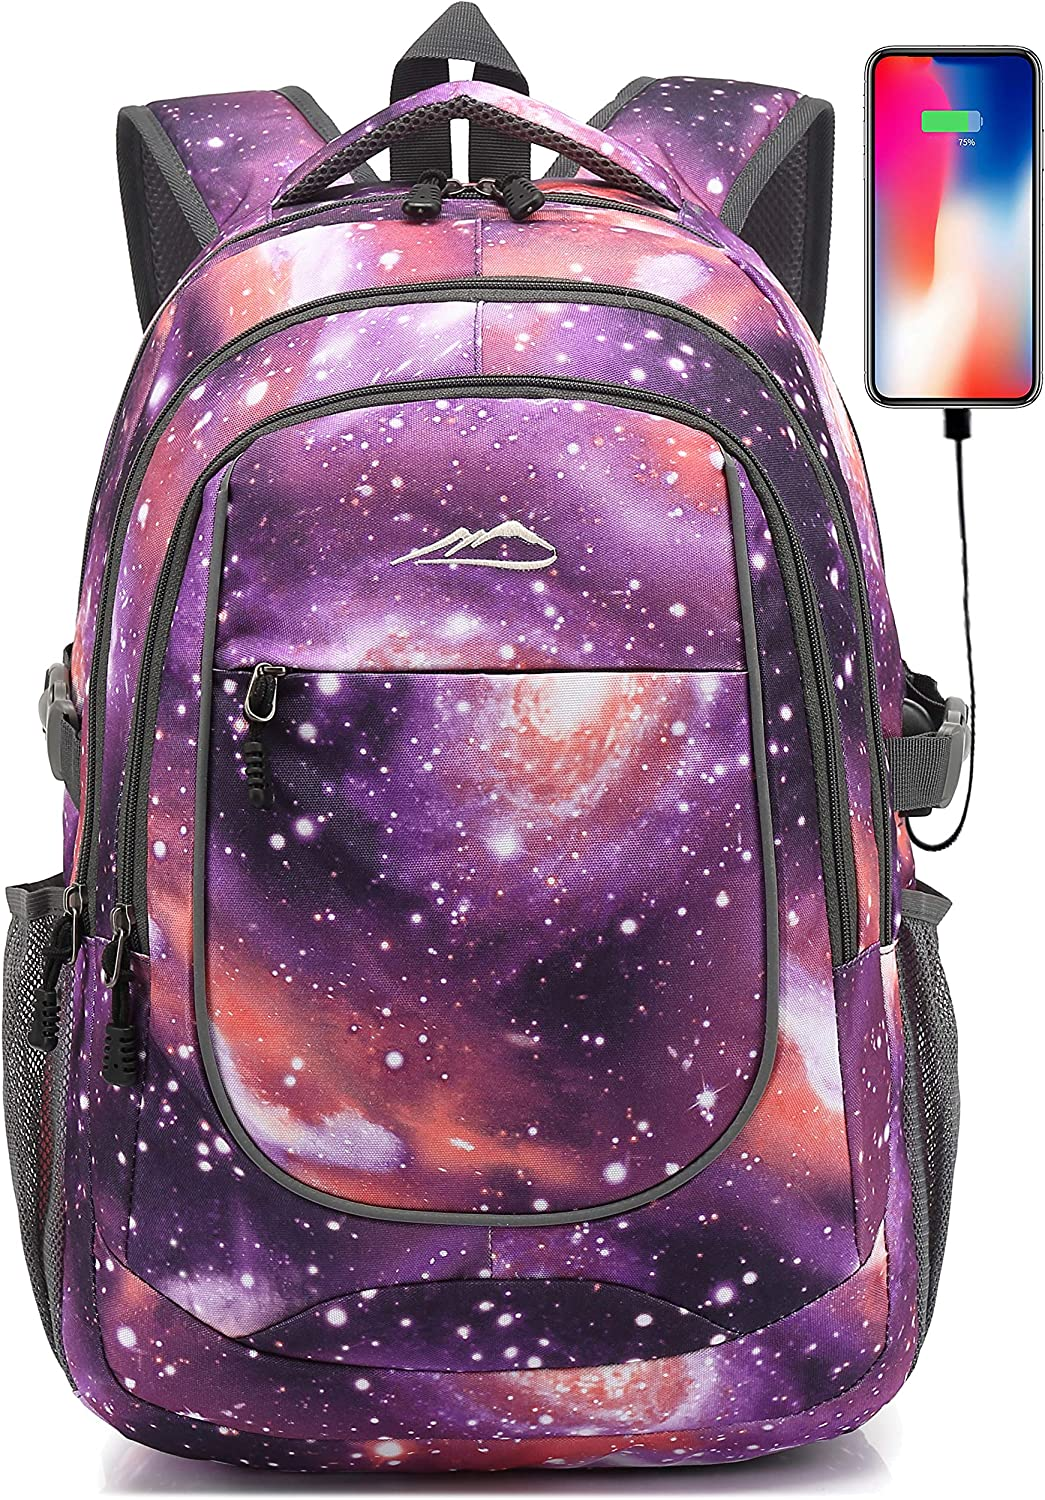 Backpack for School College Student Sturdy Bookbag Travel Business with USB Charging Port